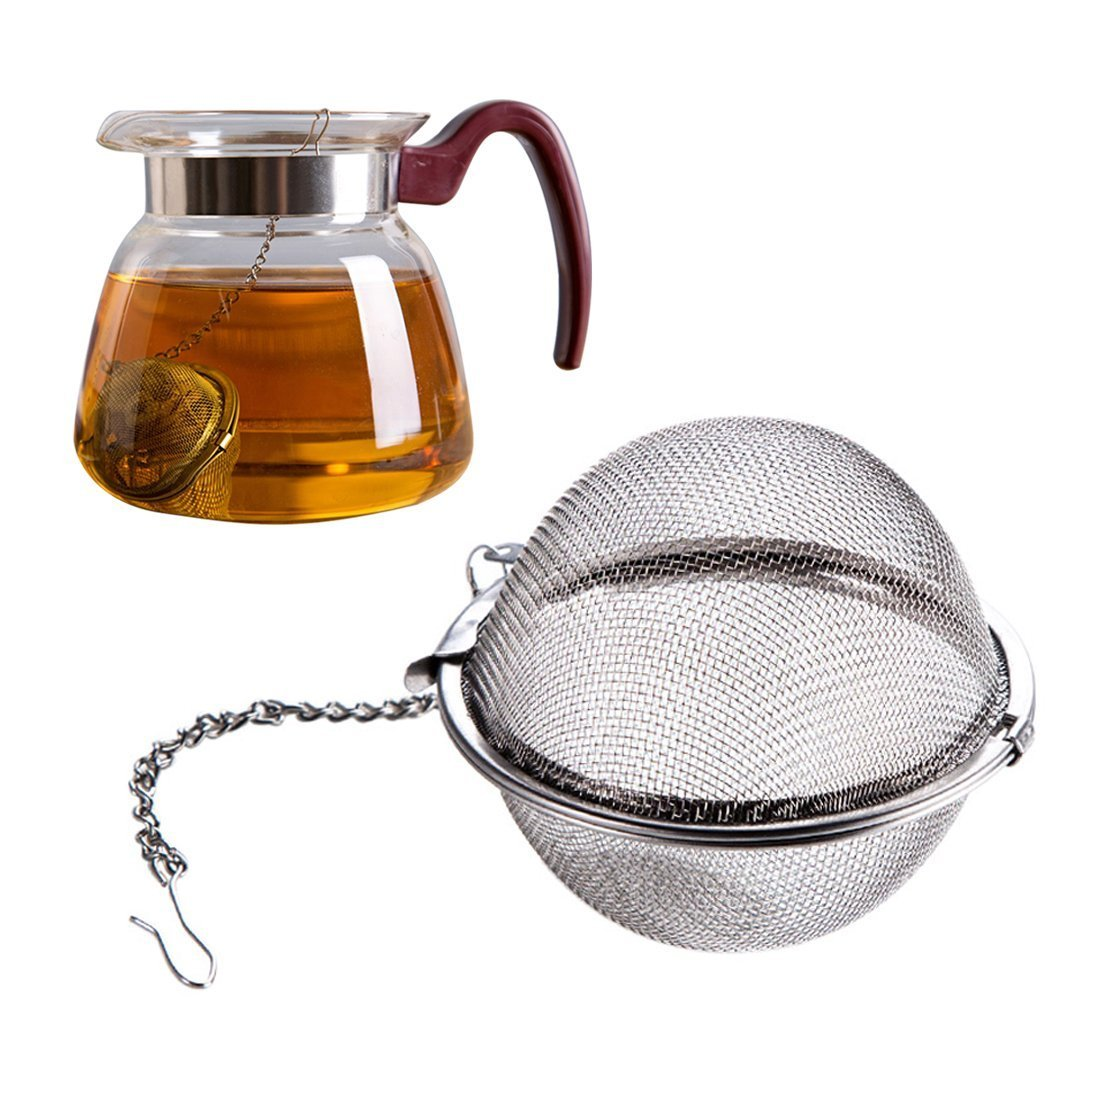 A-szcxtop™ Stainless Steel Tea Ball Infuser with handle UKPPLBDH1153